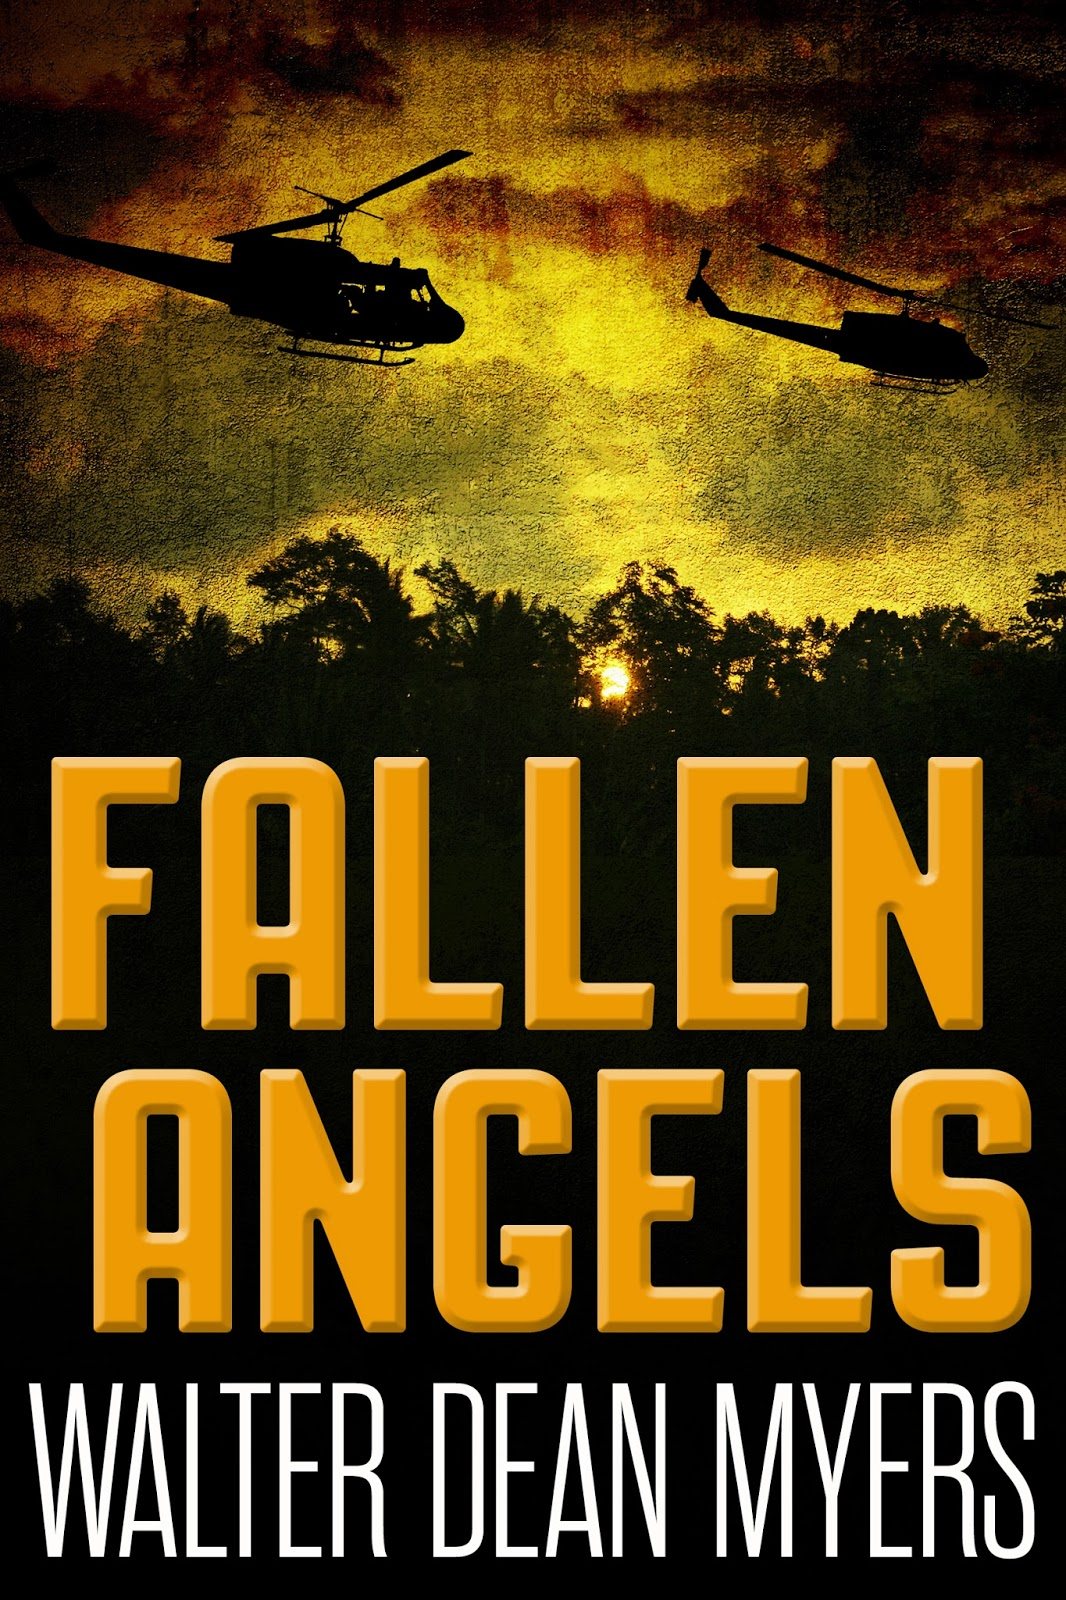 fgallen angels cover